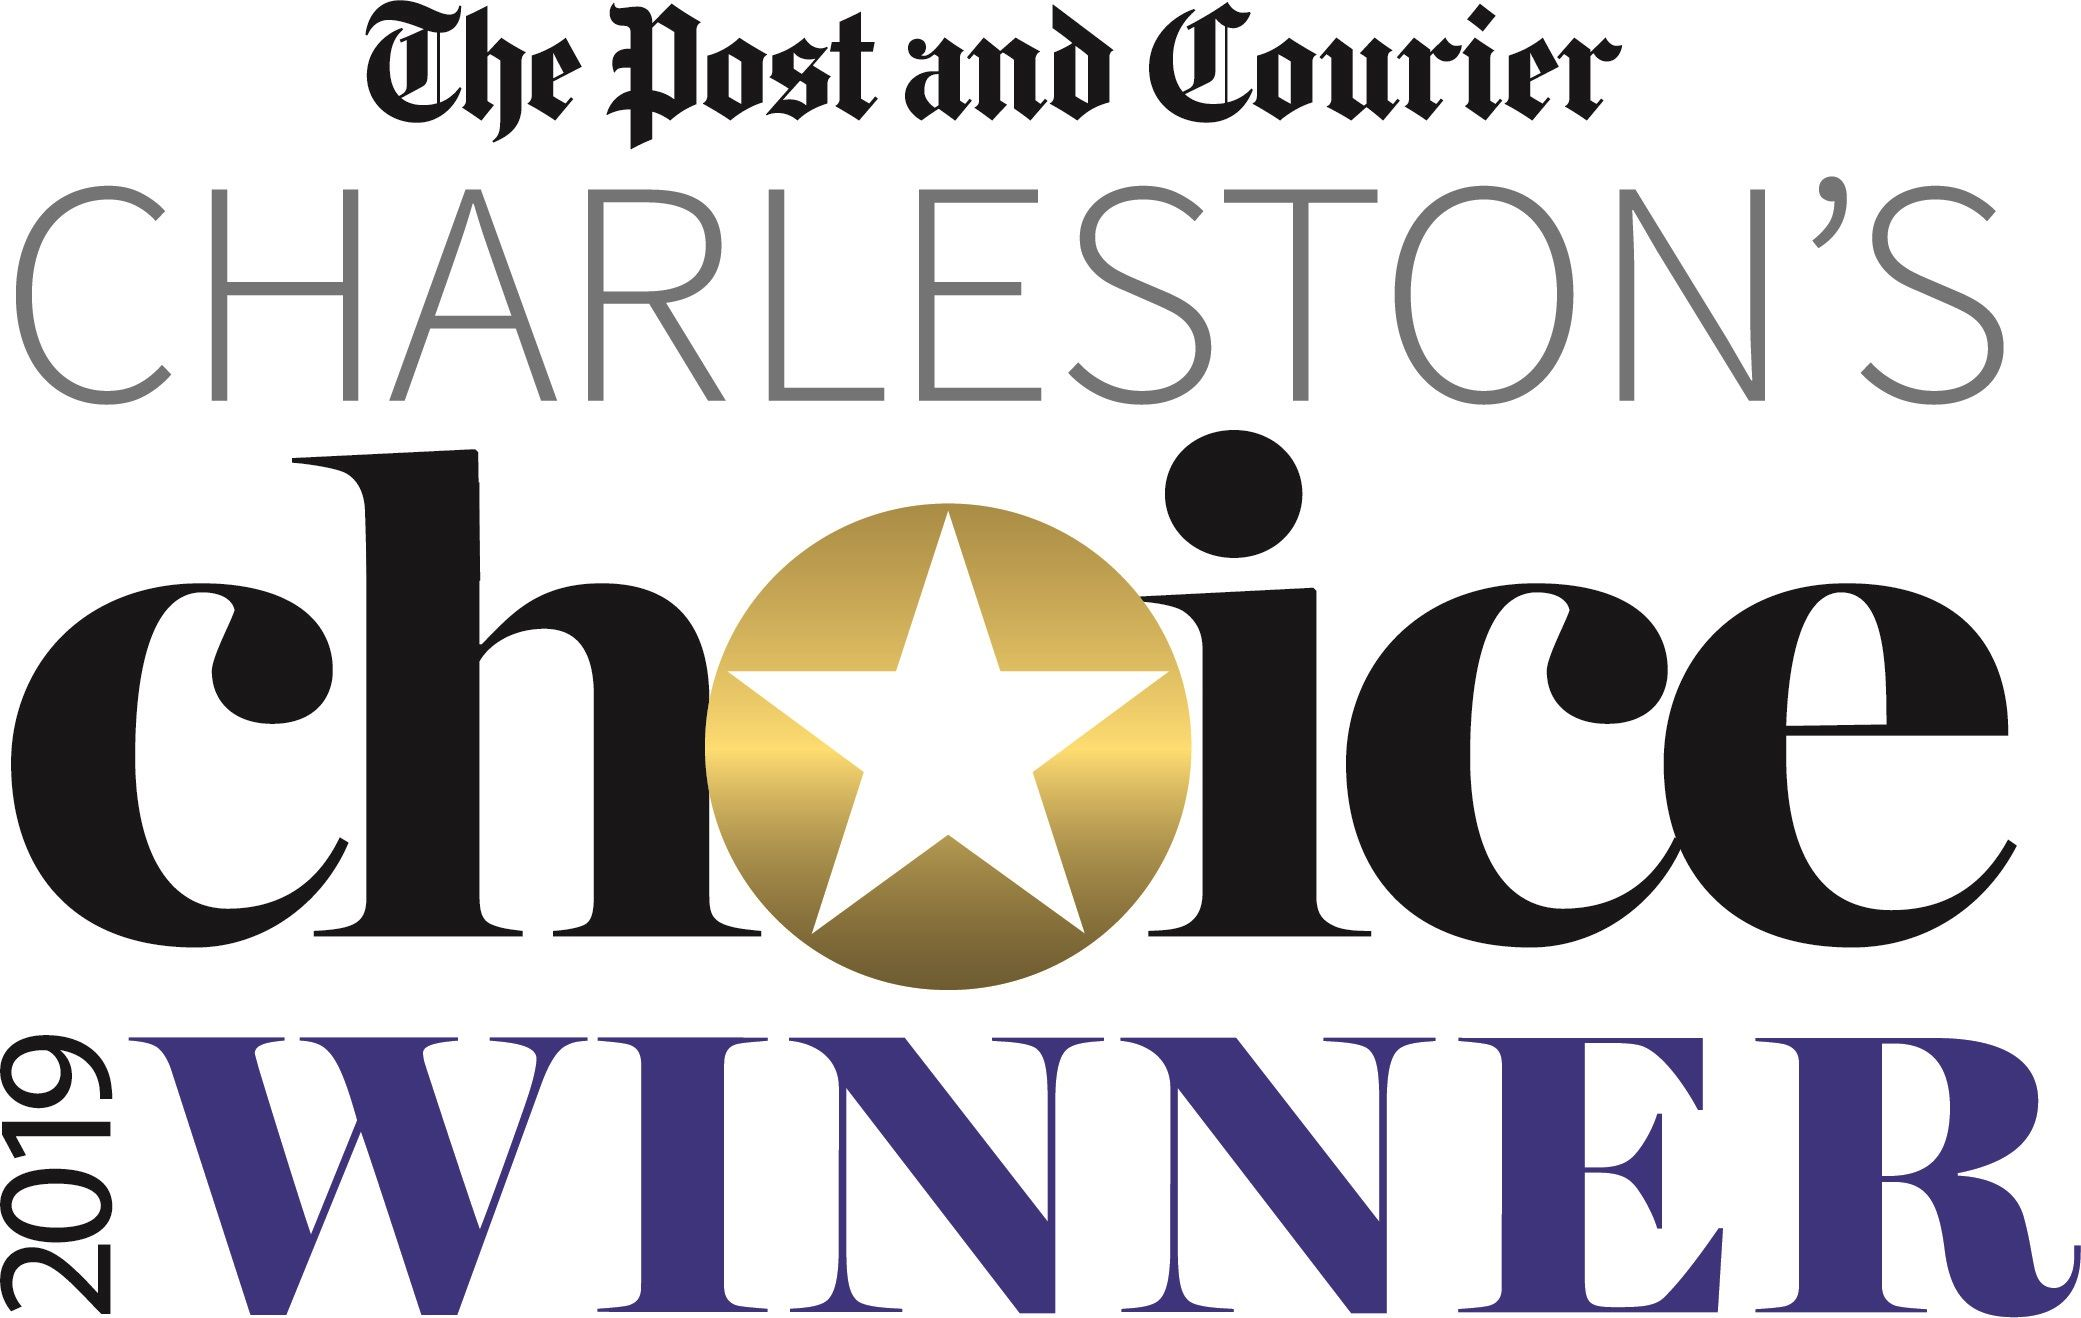 Post & Courier 2019 Charleston Choice Winner